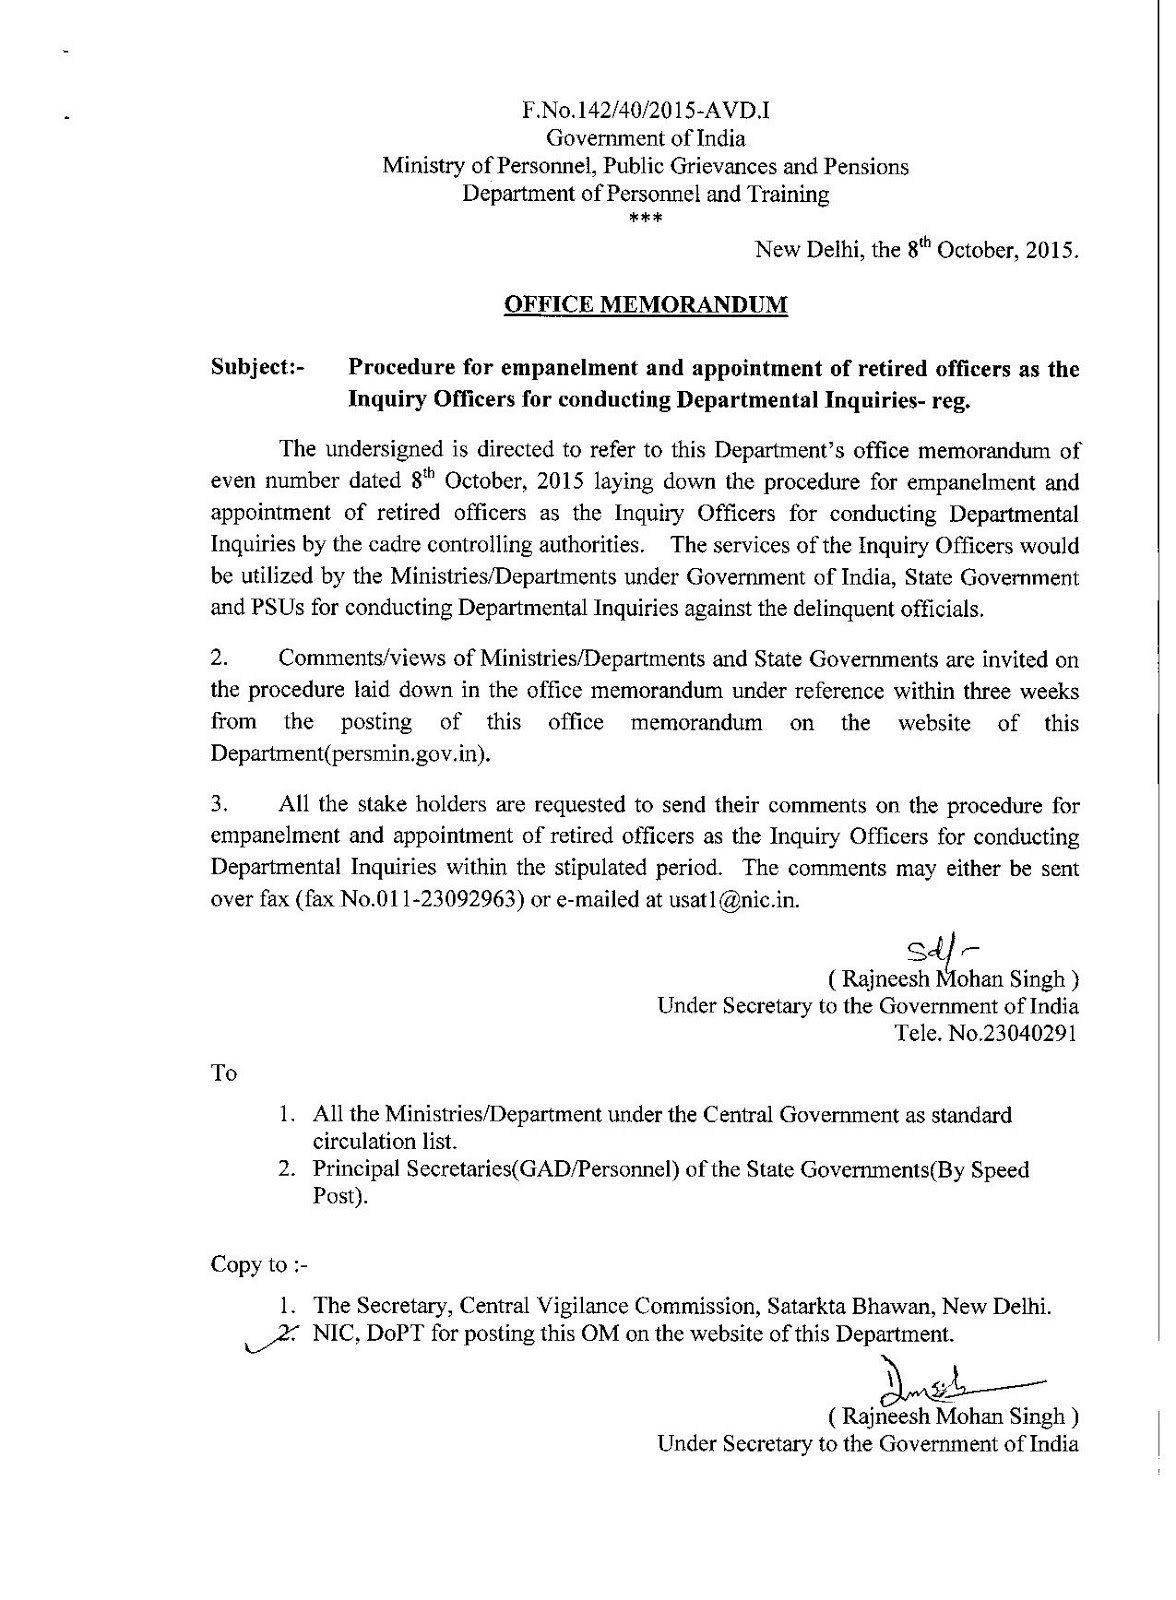 Procedure for empanelment and appointment of retired officers as procedure for empanelment and appointment of retired officers as the inquiry officers for conducting departmental inquiries spiritdancerdesigns Images